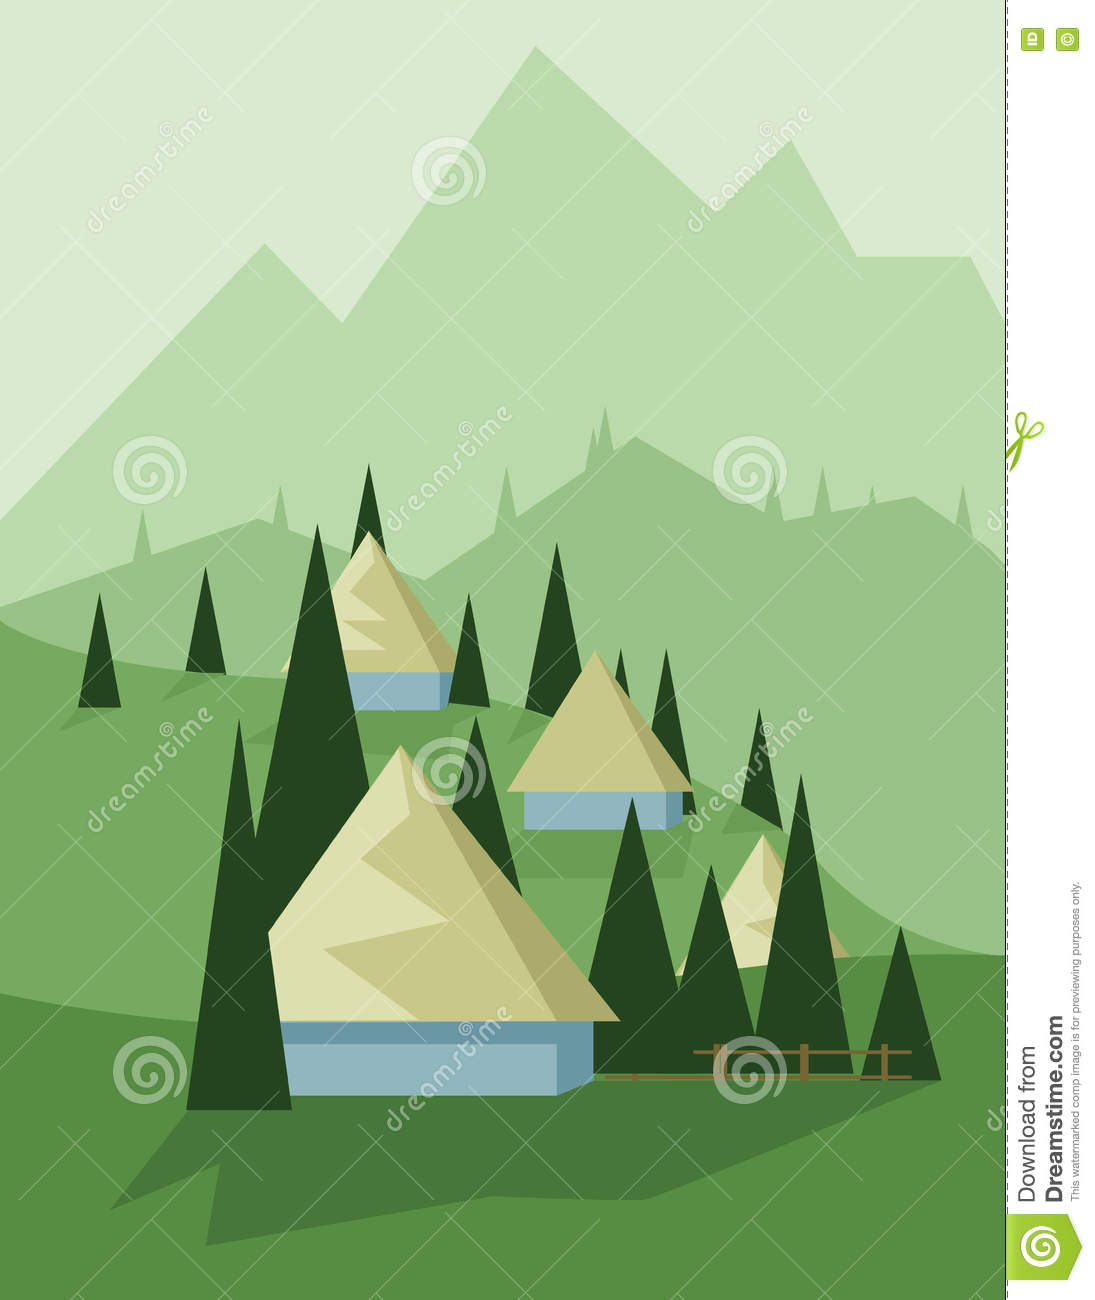 Abstract landscape design with green trees and hills, yellow houses in the mountains, flat style